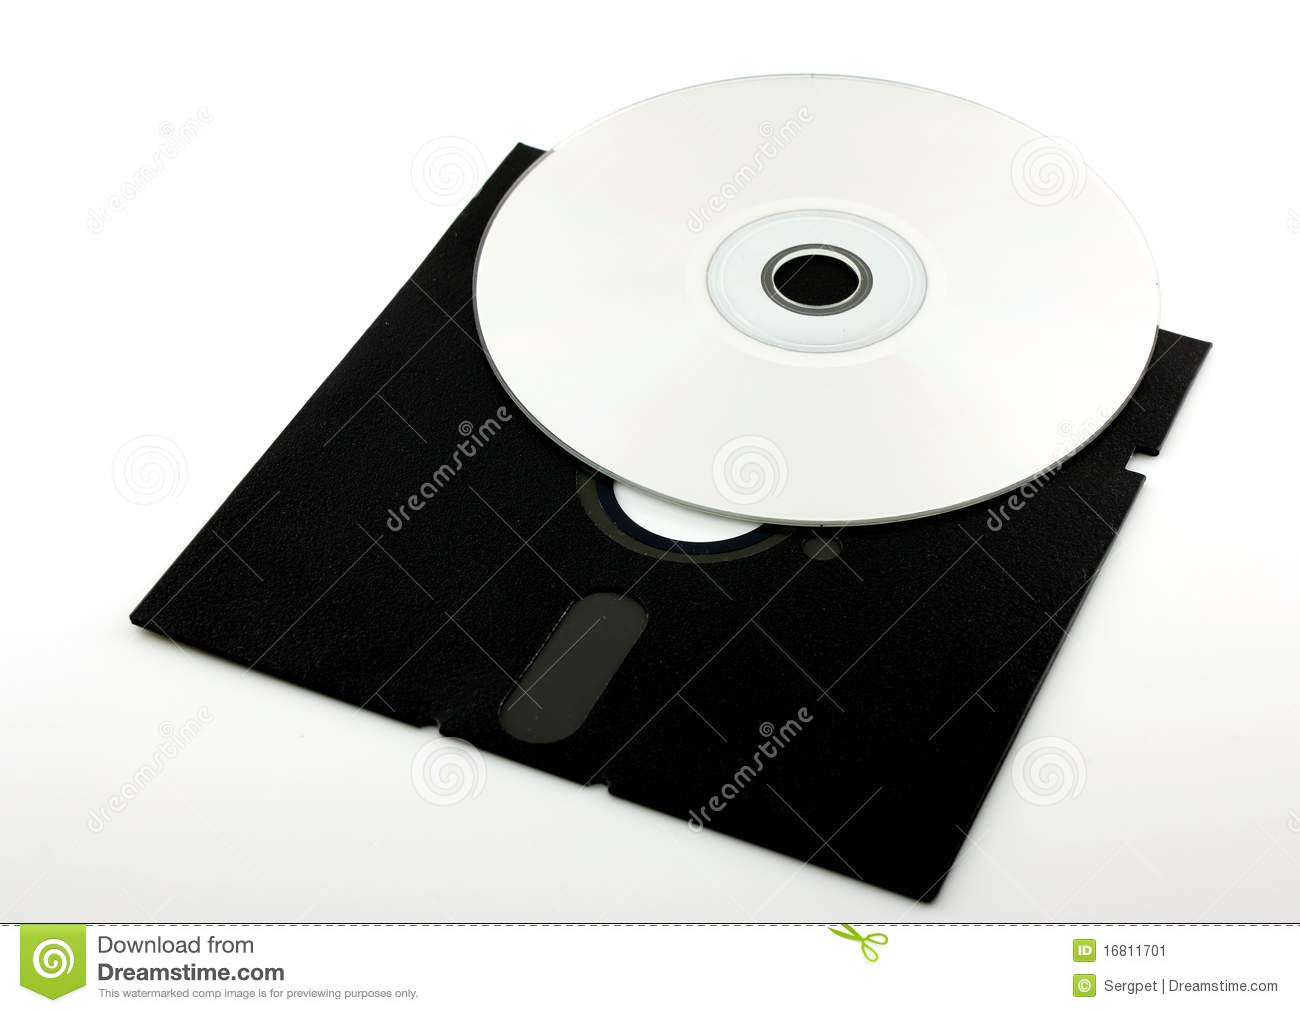 Old floppy disk and cd rom stock image image 16811701 - Uses for old floppy disks ...